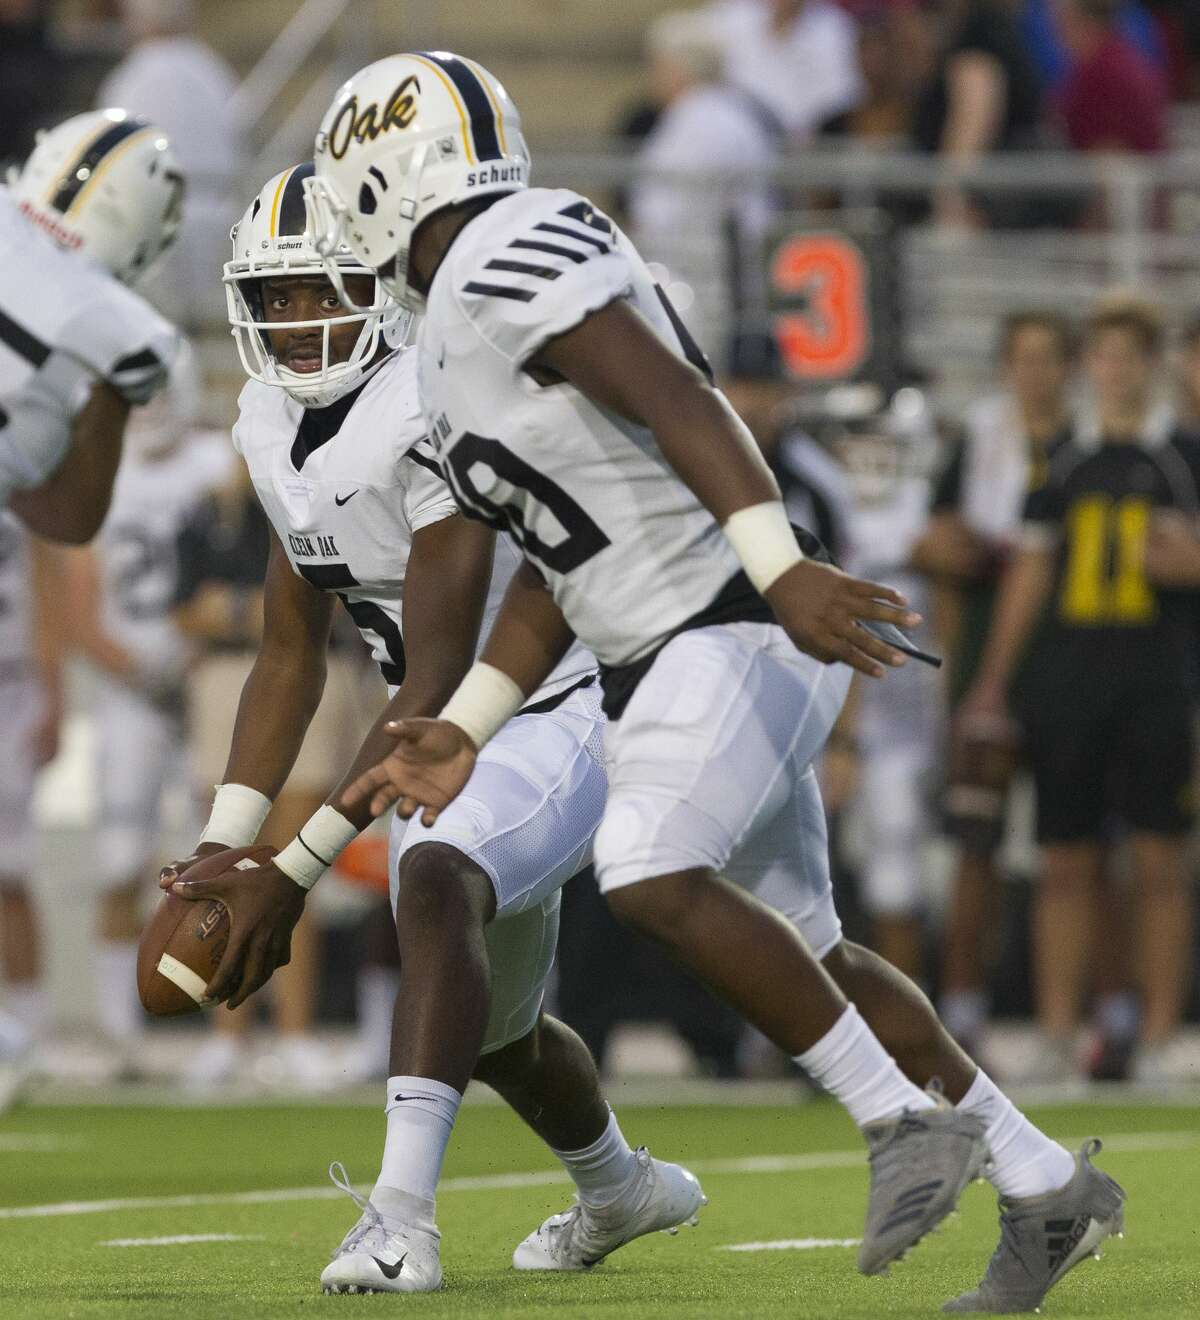 Klein Oak quarterback Montrell Bolton (5) pitches the ball to running back Charles Garrett (40) during the first quarter of a District 15-6A high school football game at Woodforest Bank Stadium, Friday, Sept. 28, 2018, in Shenandoah.